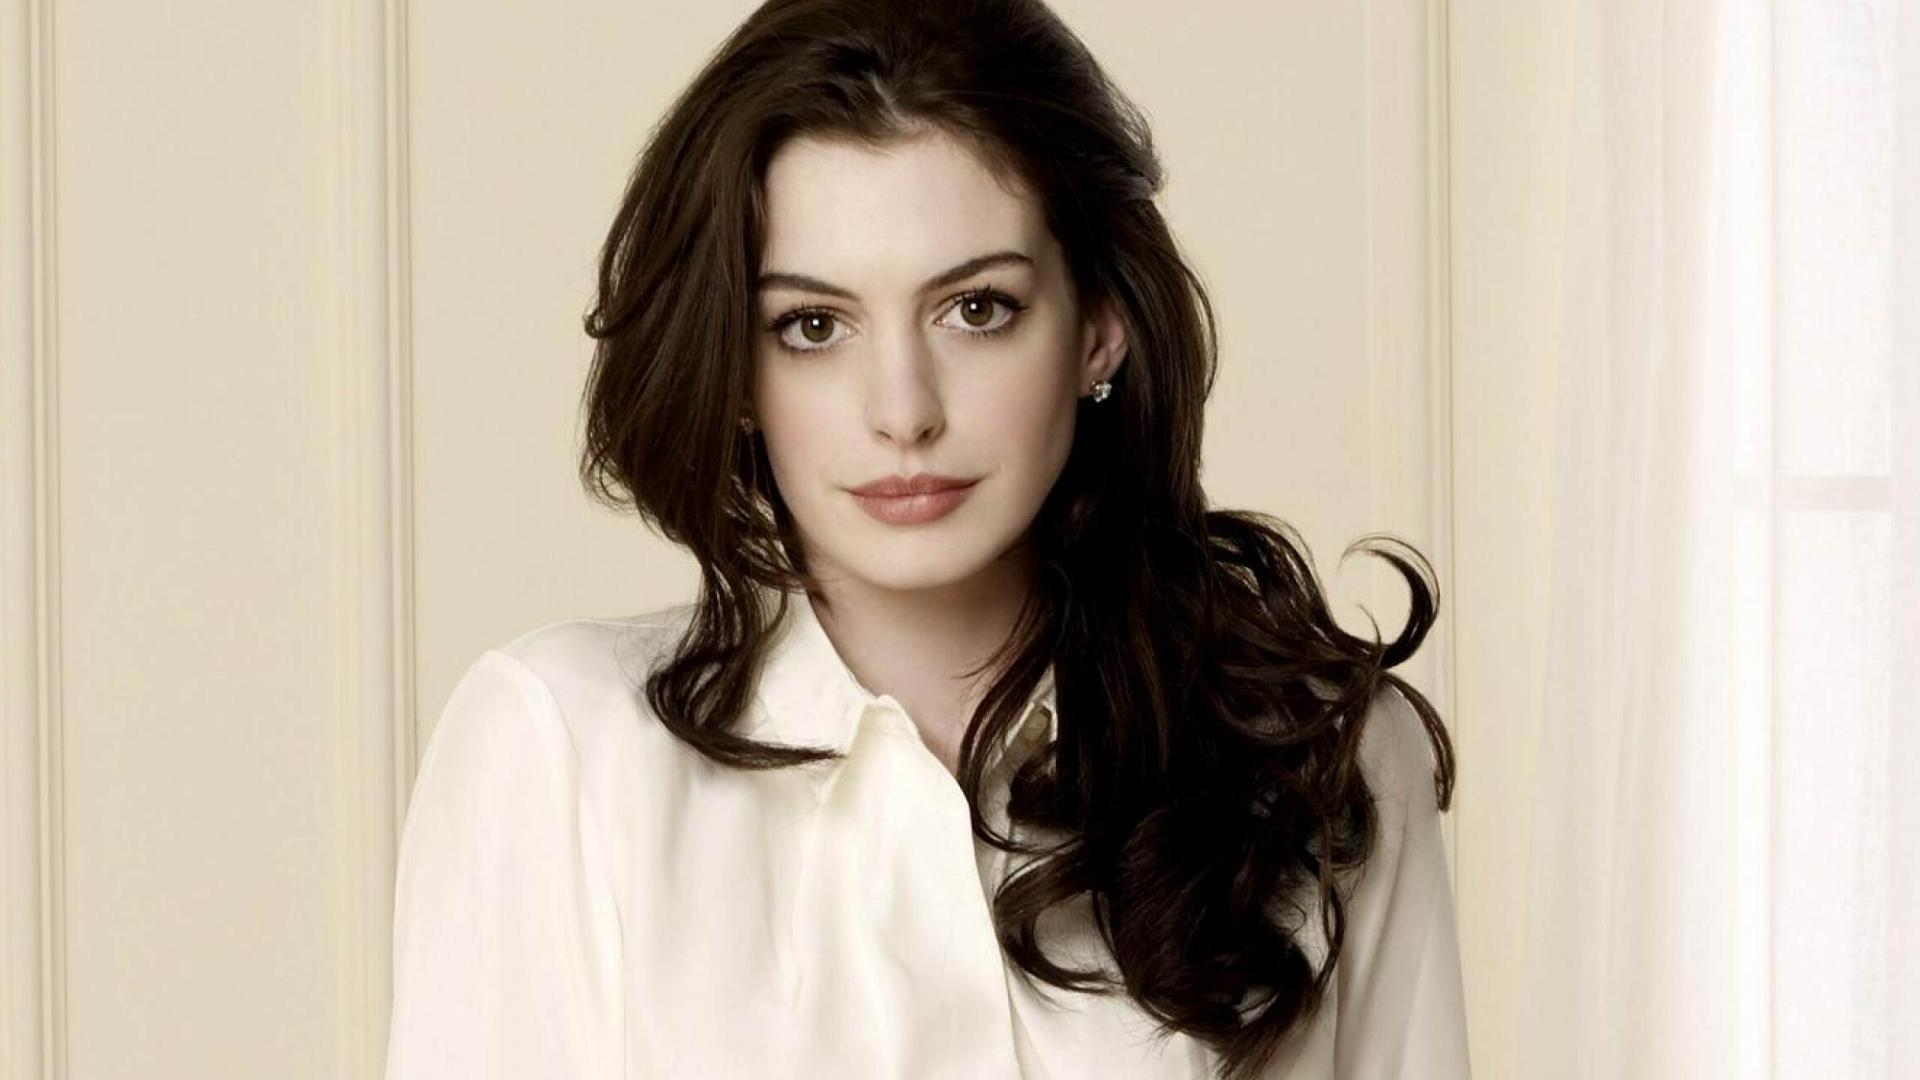 1920x1080 - Anne Hathaway Wallpapers 11